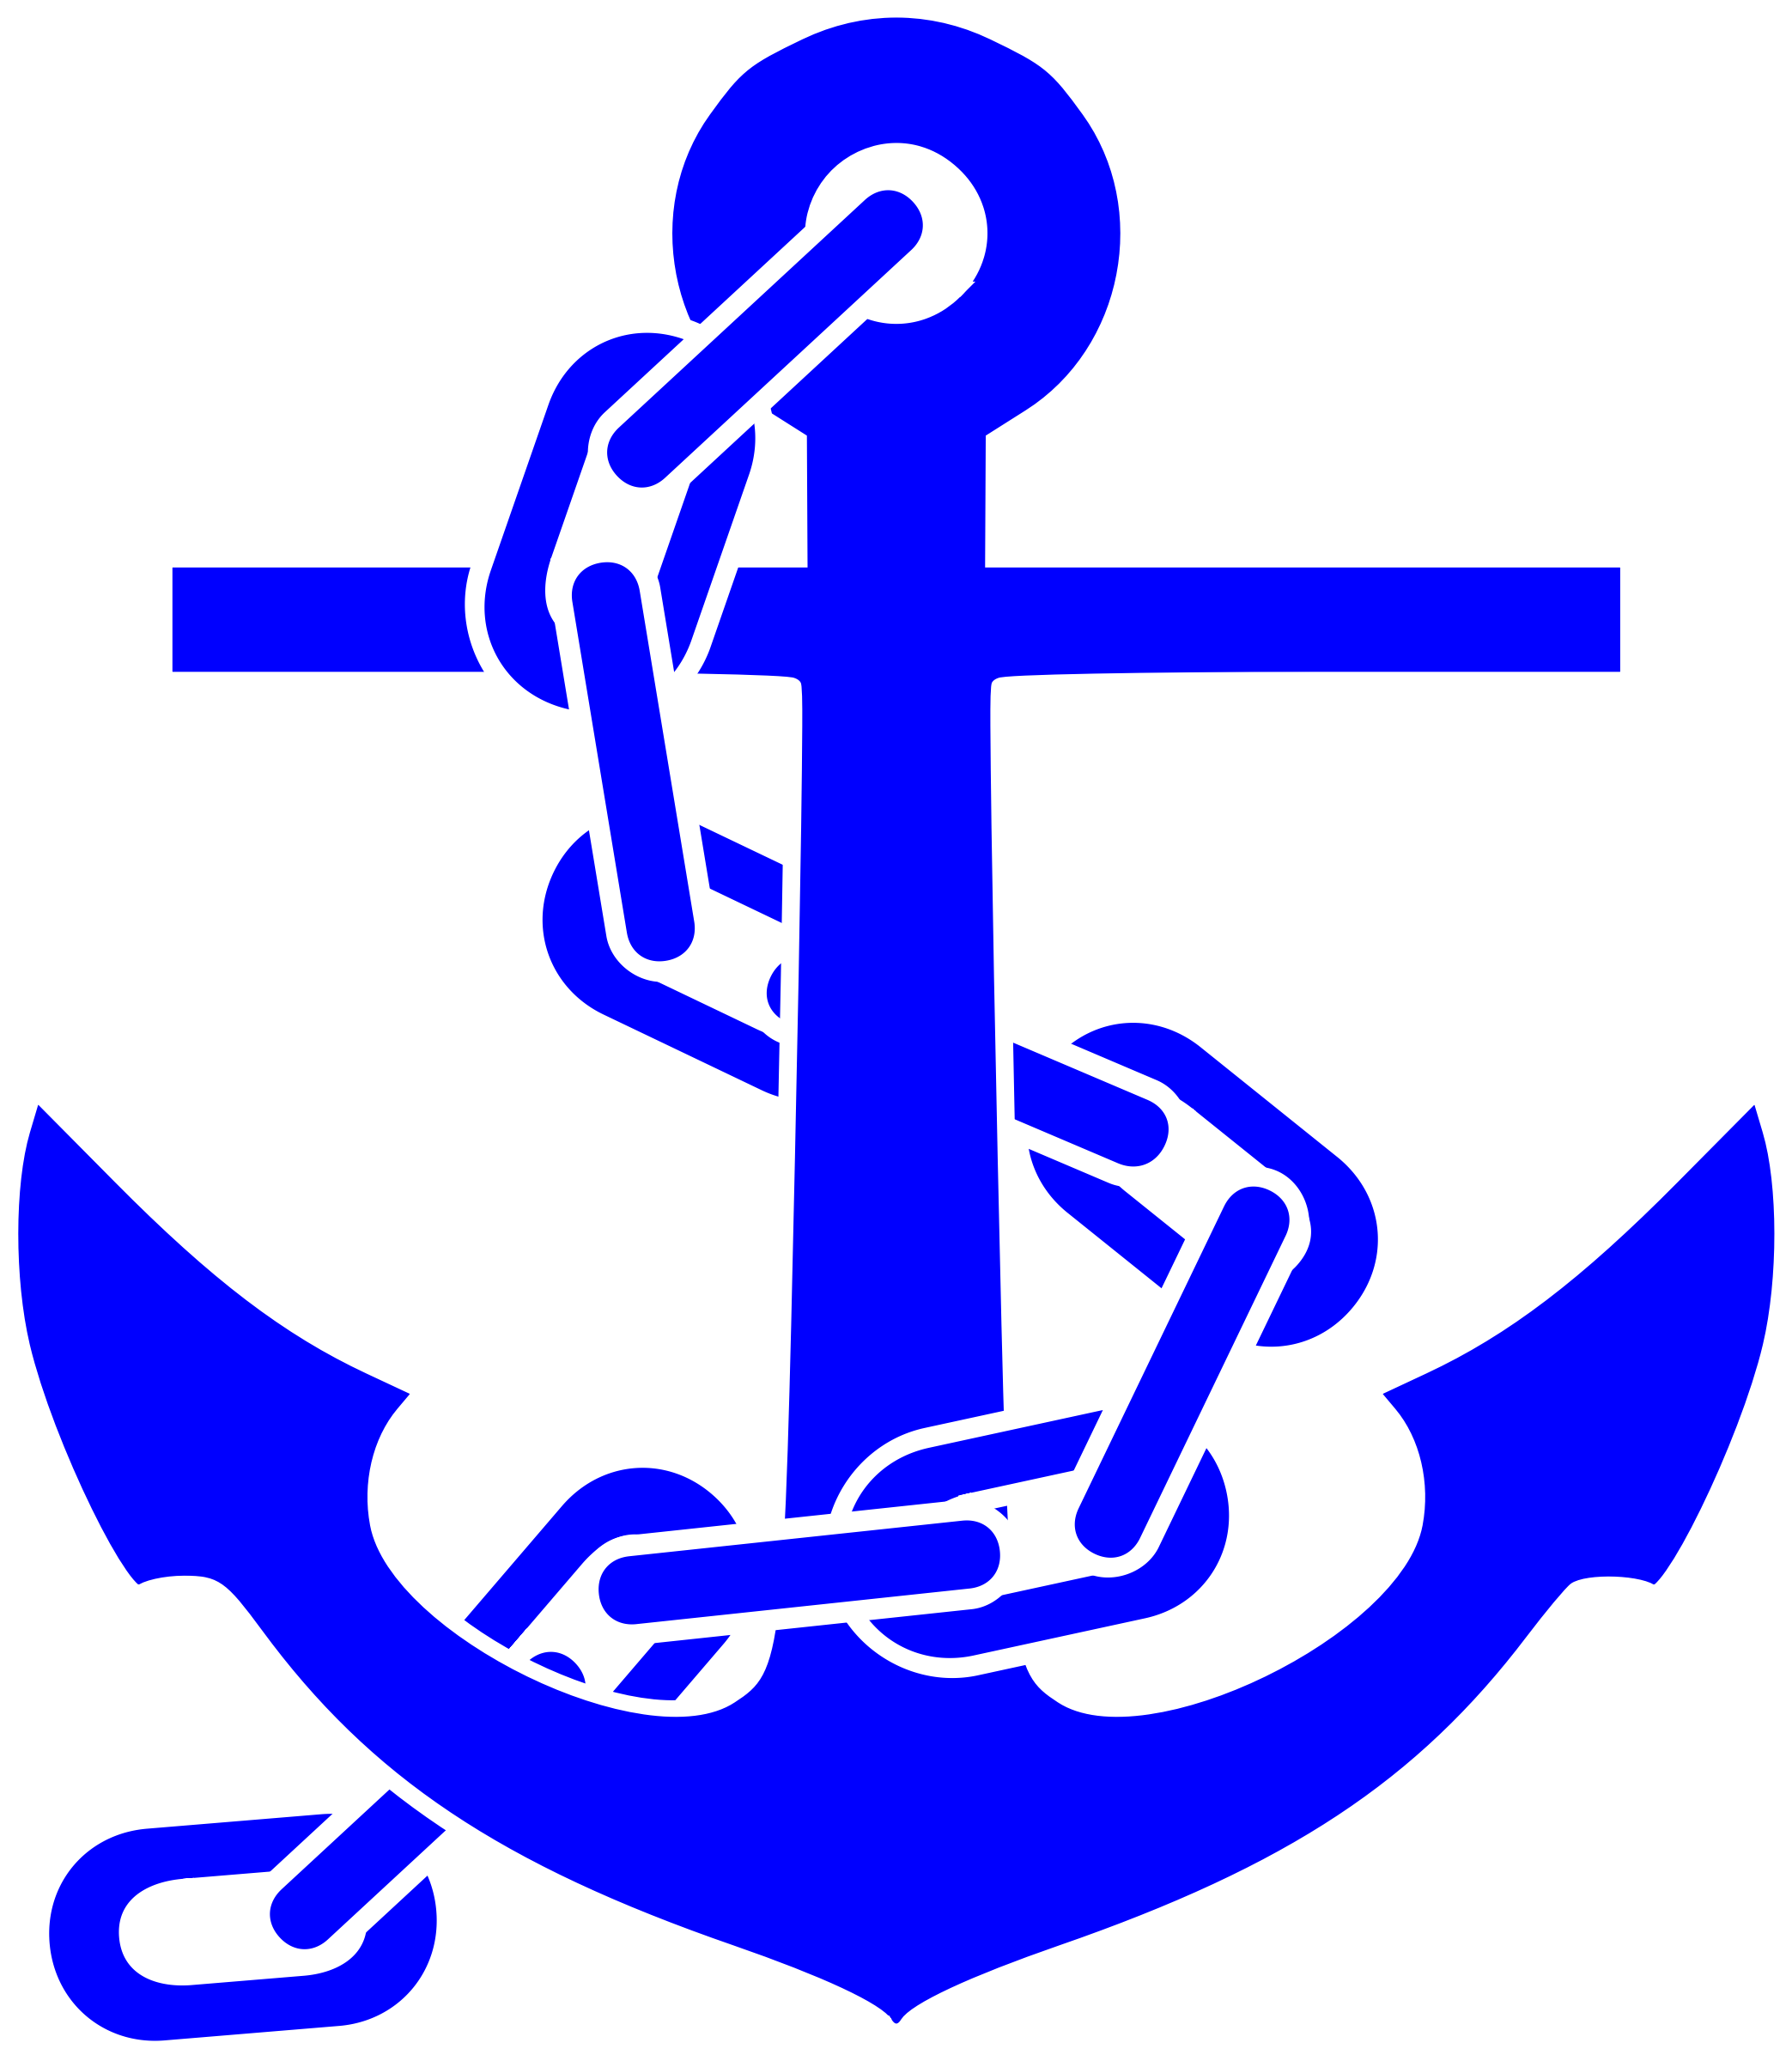 Anchor Png - ClipArt Best